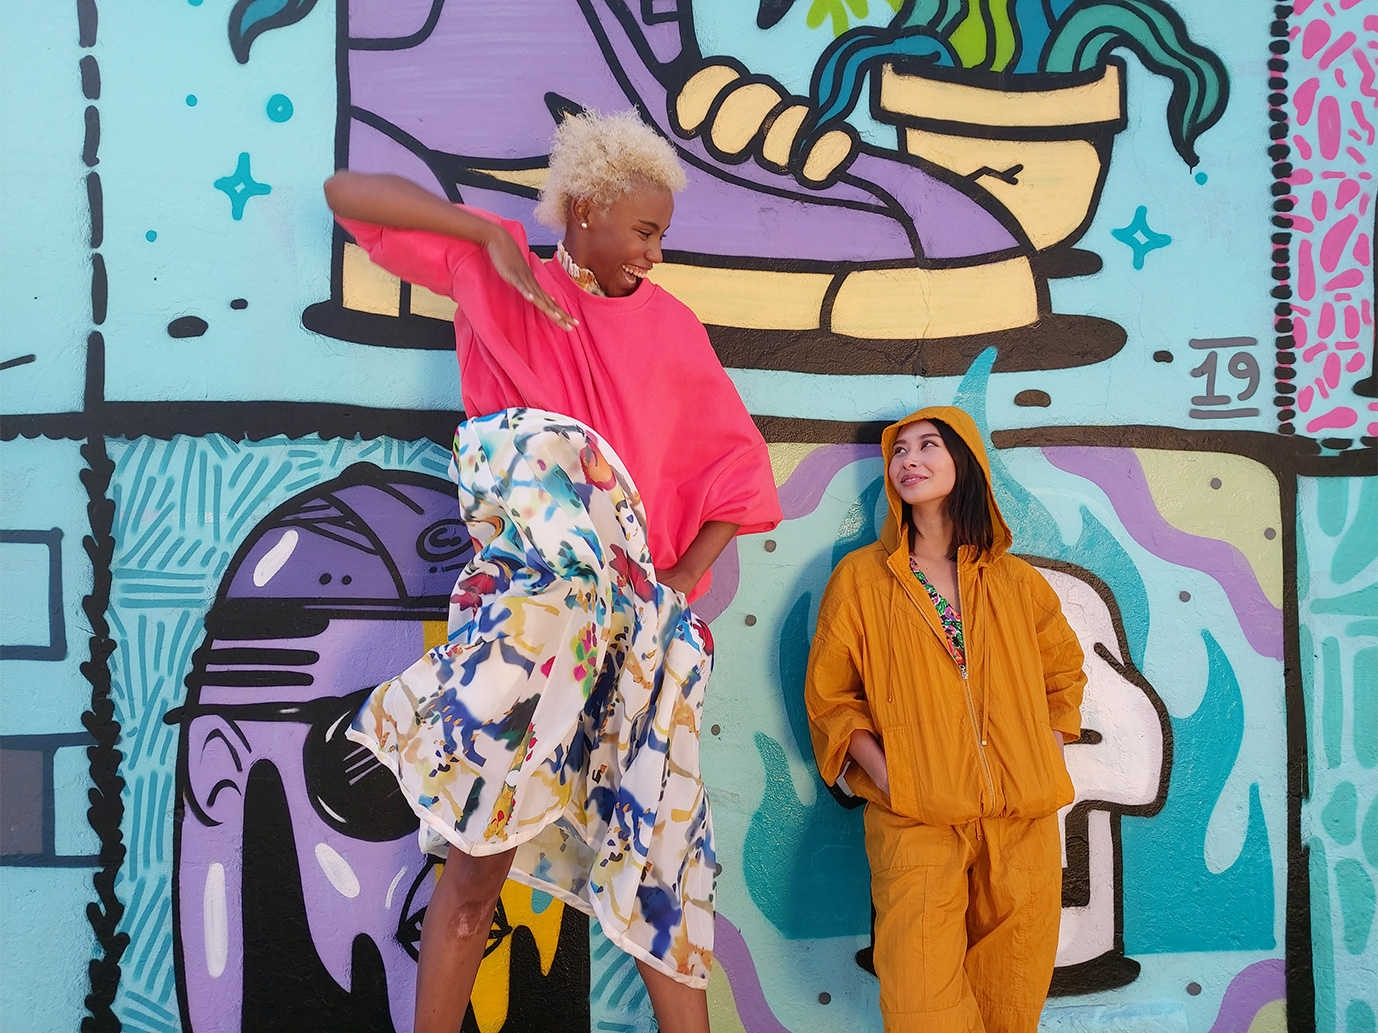 Photo captured by Galaxy A80's Wide-angle lens of two women, one tall and one short, in front of a graffiti wall.